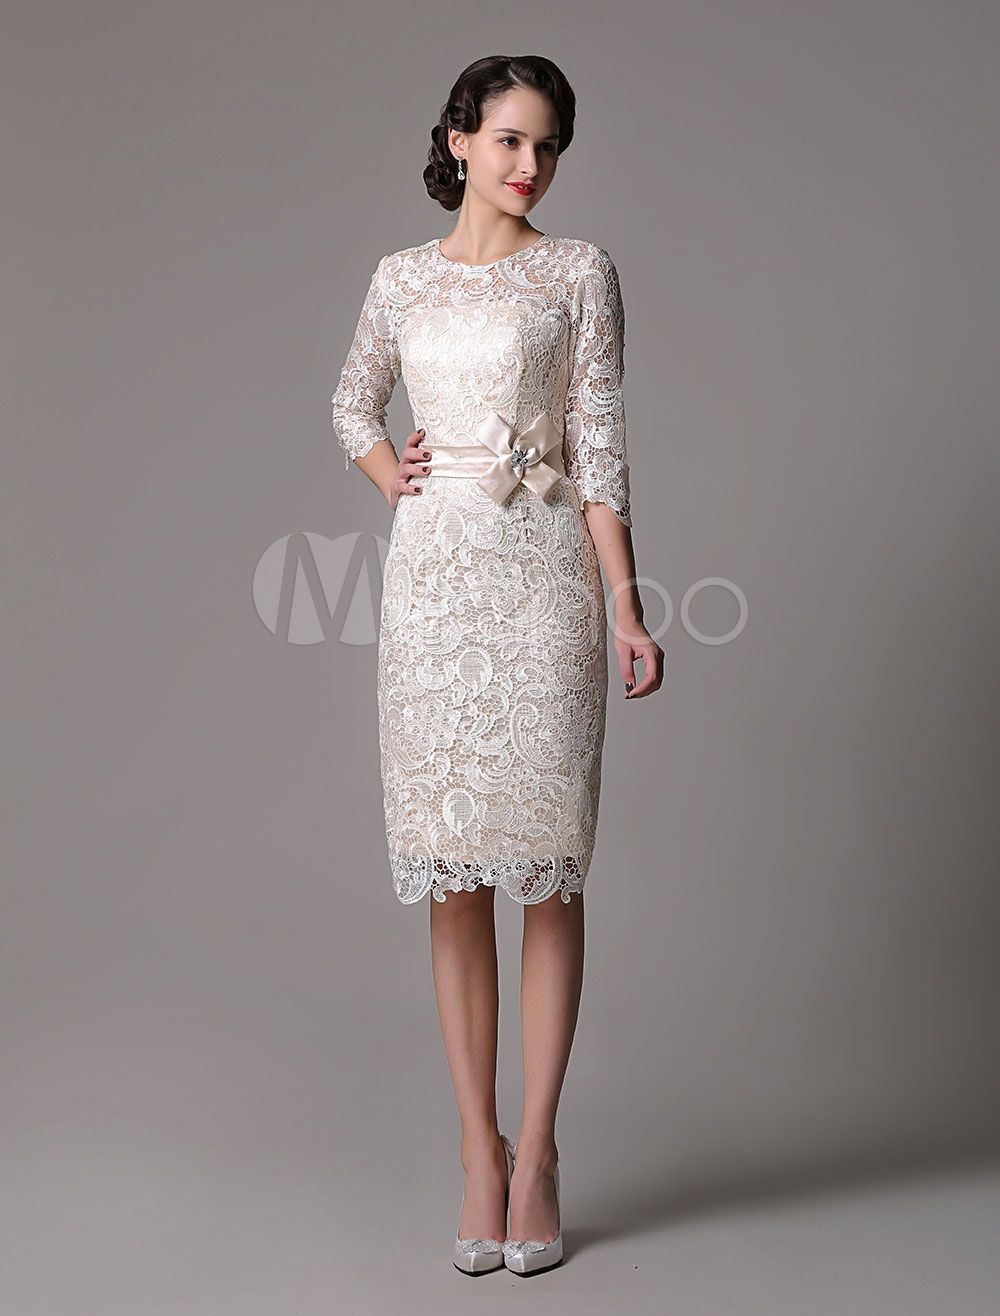 Wedding guest dresses lace sheath champagne cocktail dress knee